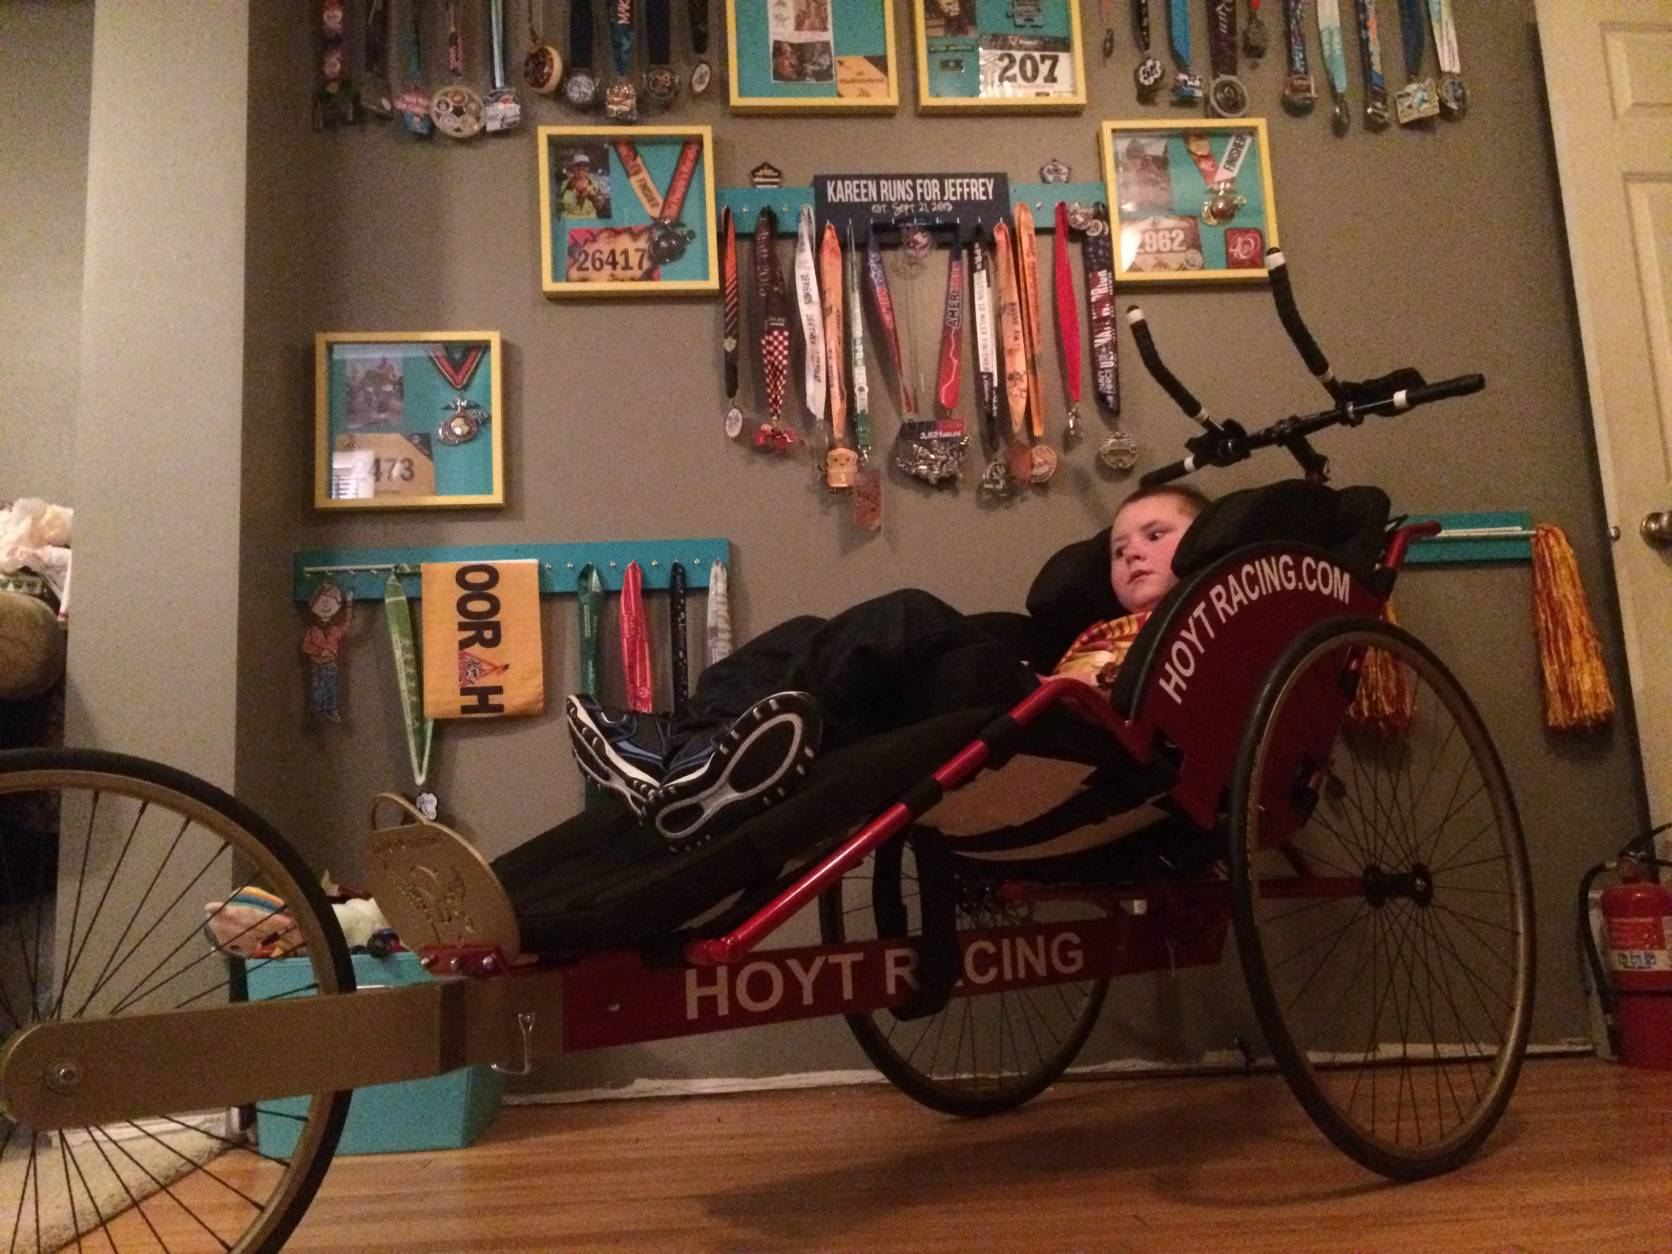 Last year, Kareen and the Bergeman family teamed up with Ainsley's Angels of America ((   http://www.ainsleysangels.org/    ))) and raised enough money to get Jeffrey this new running chair. Because of their fundraising, two children – one from Wisconsin and another in Northern Virginia – will receive a running chair like this one. The wall of his bedroom is covered with Kareen's race medals since they were matched in September 2013. (Courtesy Jess Bergeman)